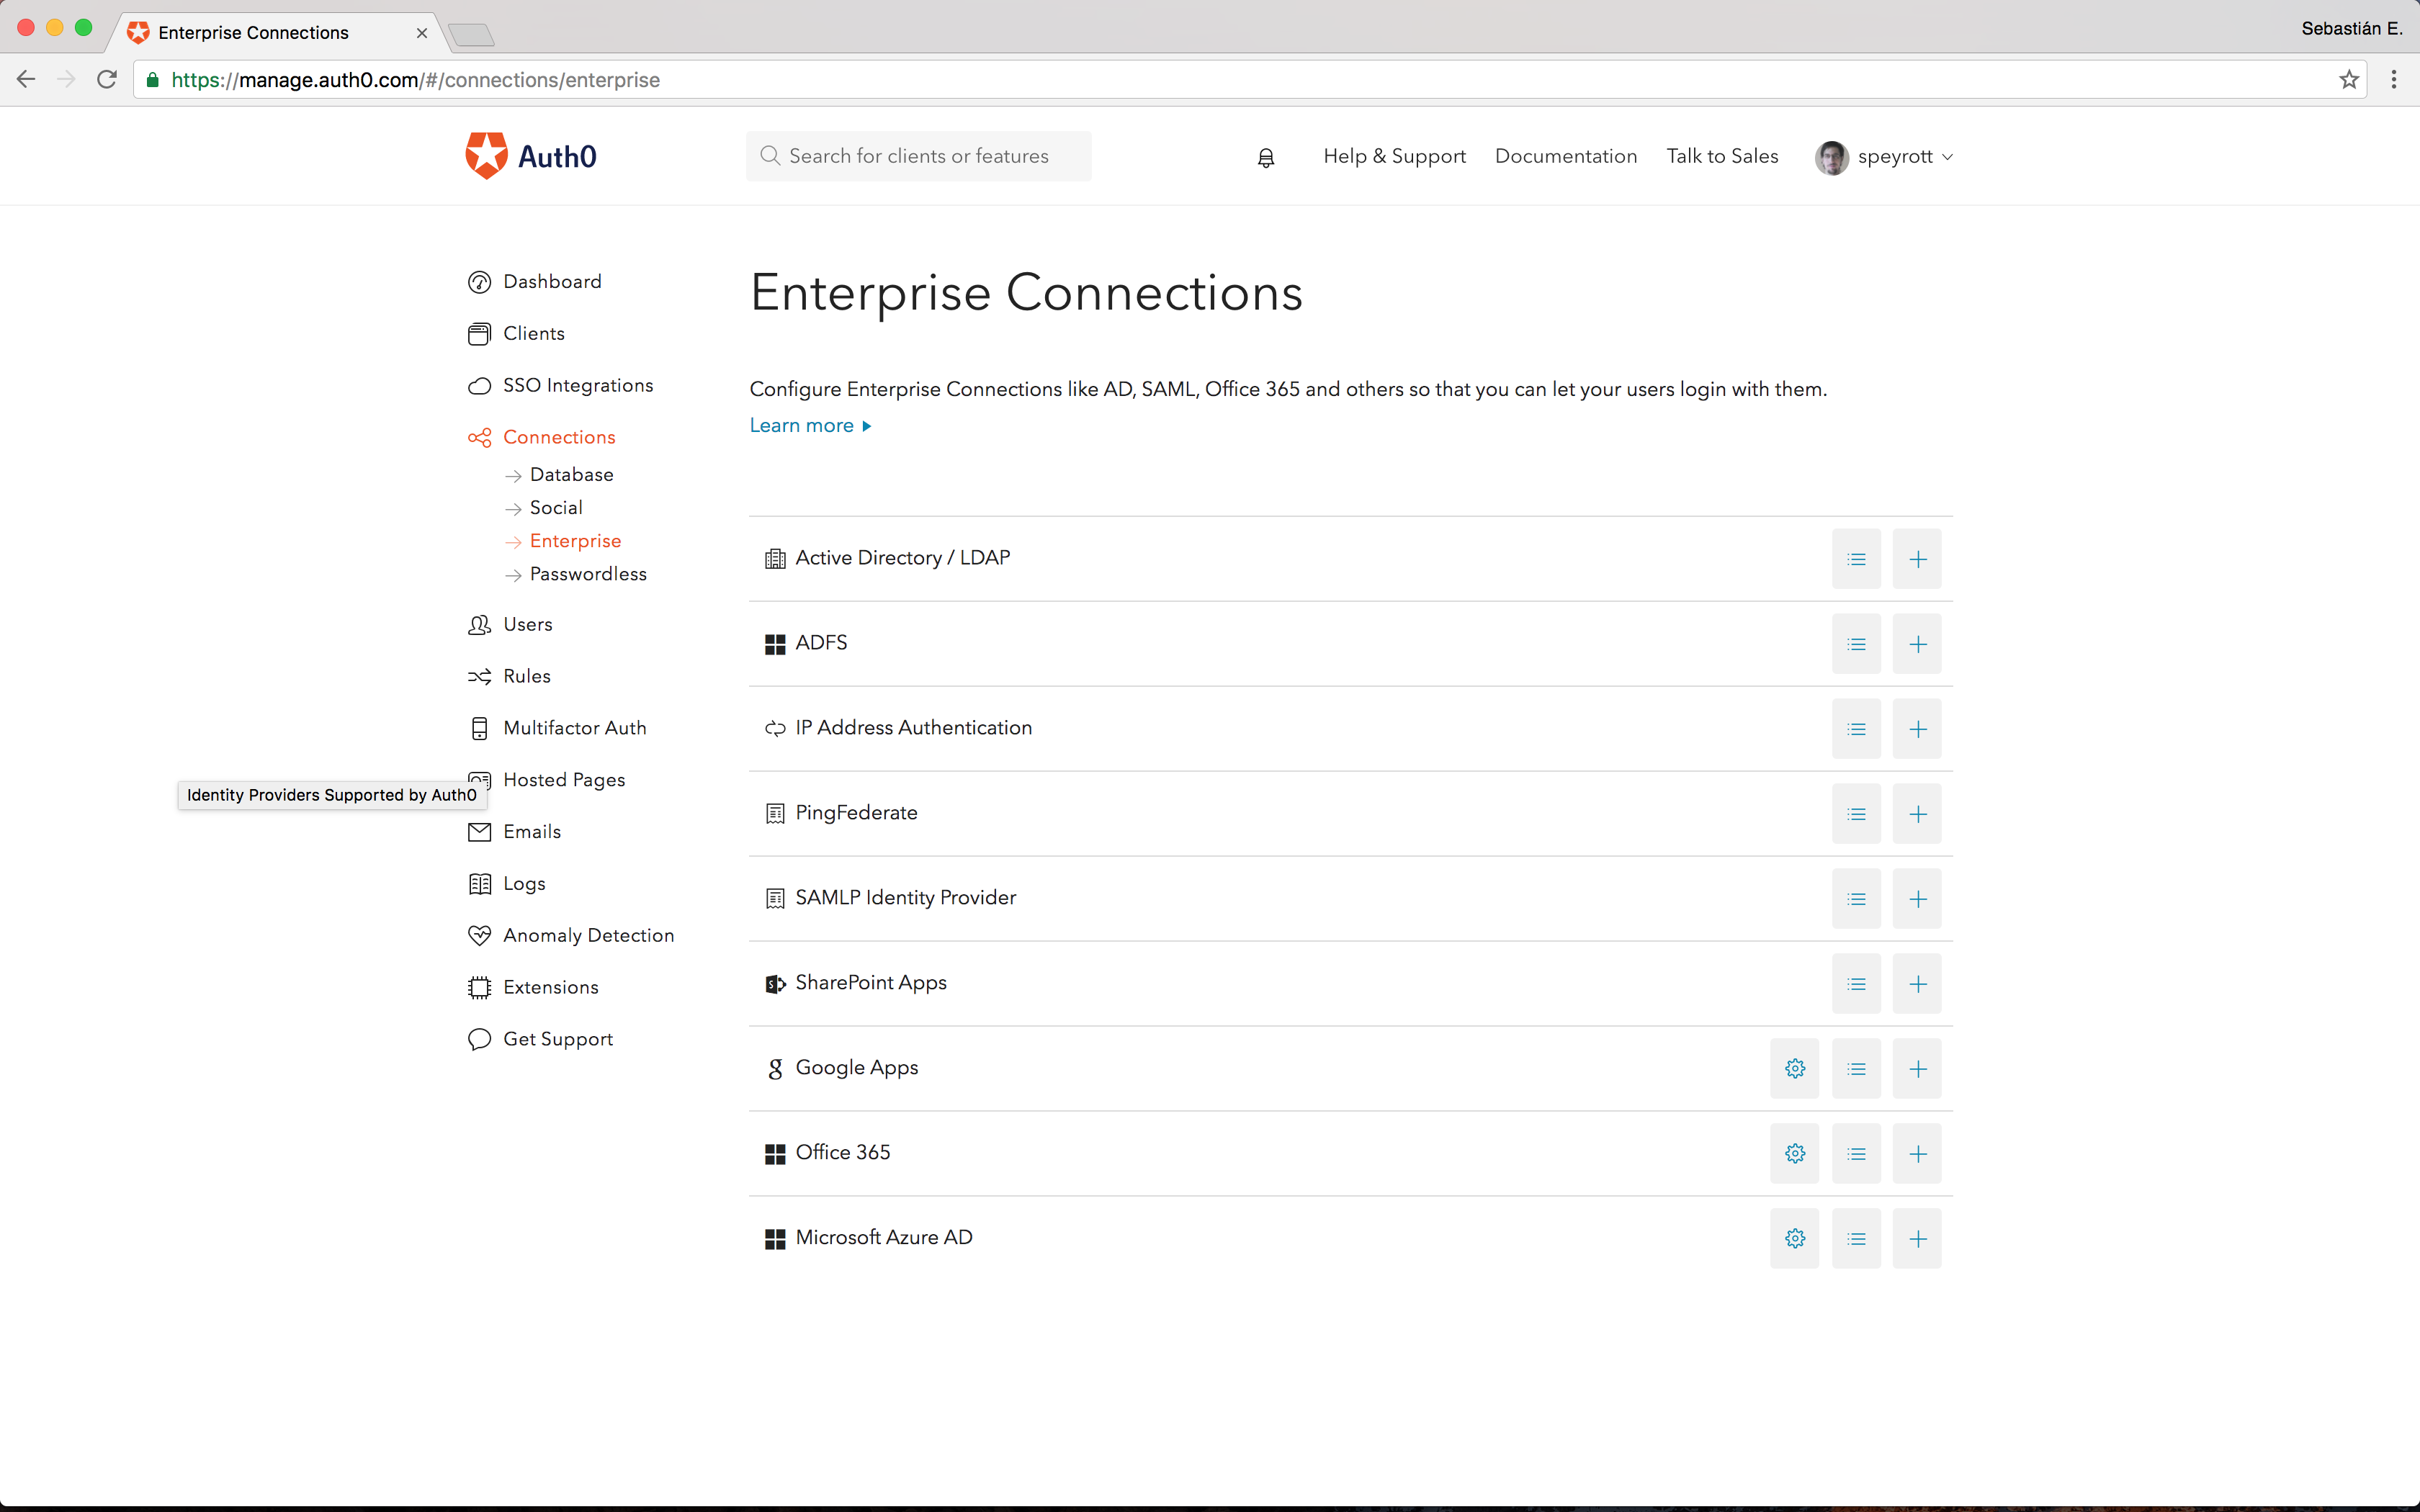 Auth0 enterprise connections